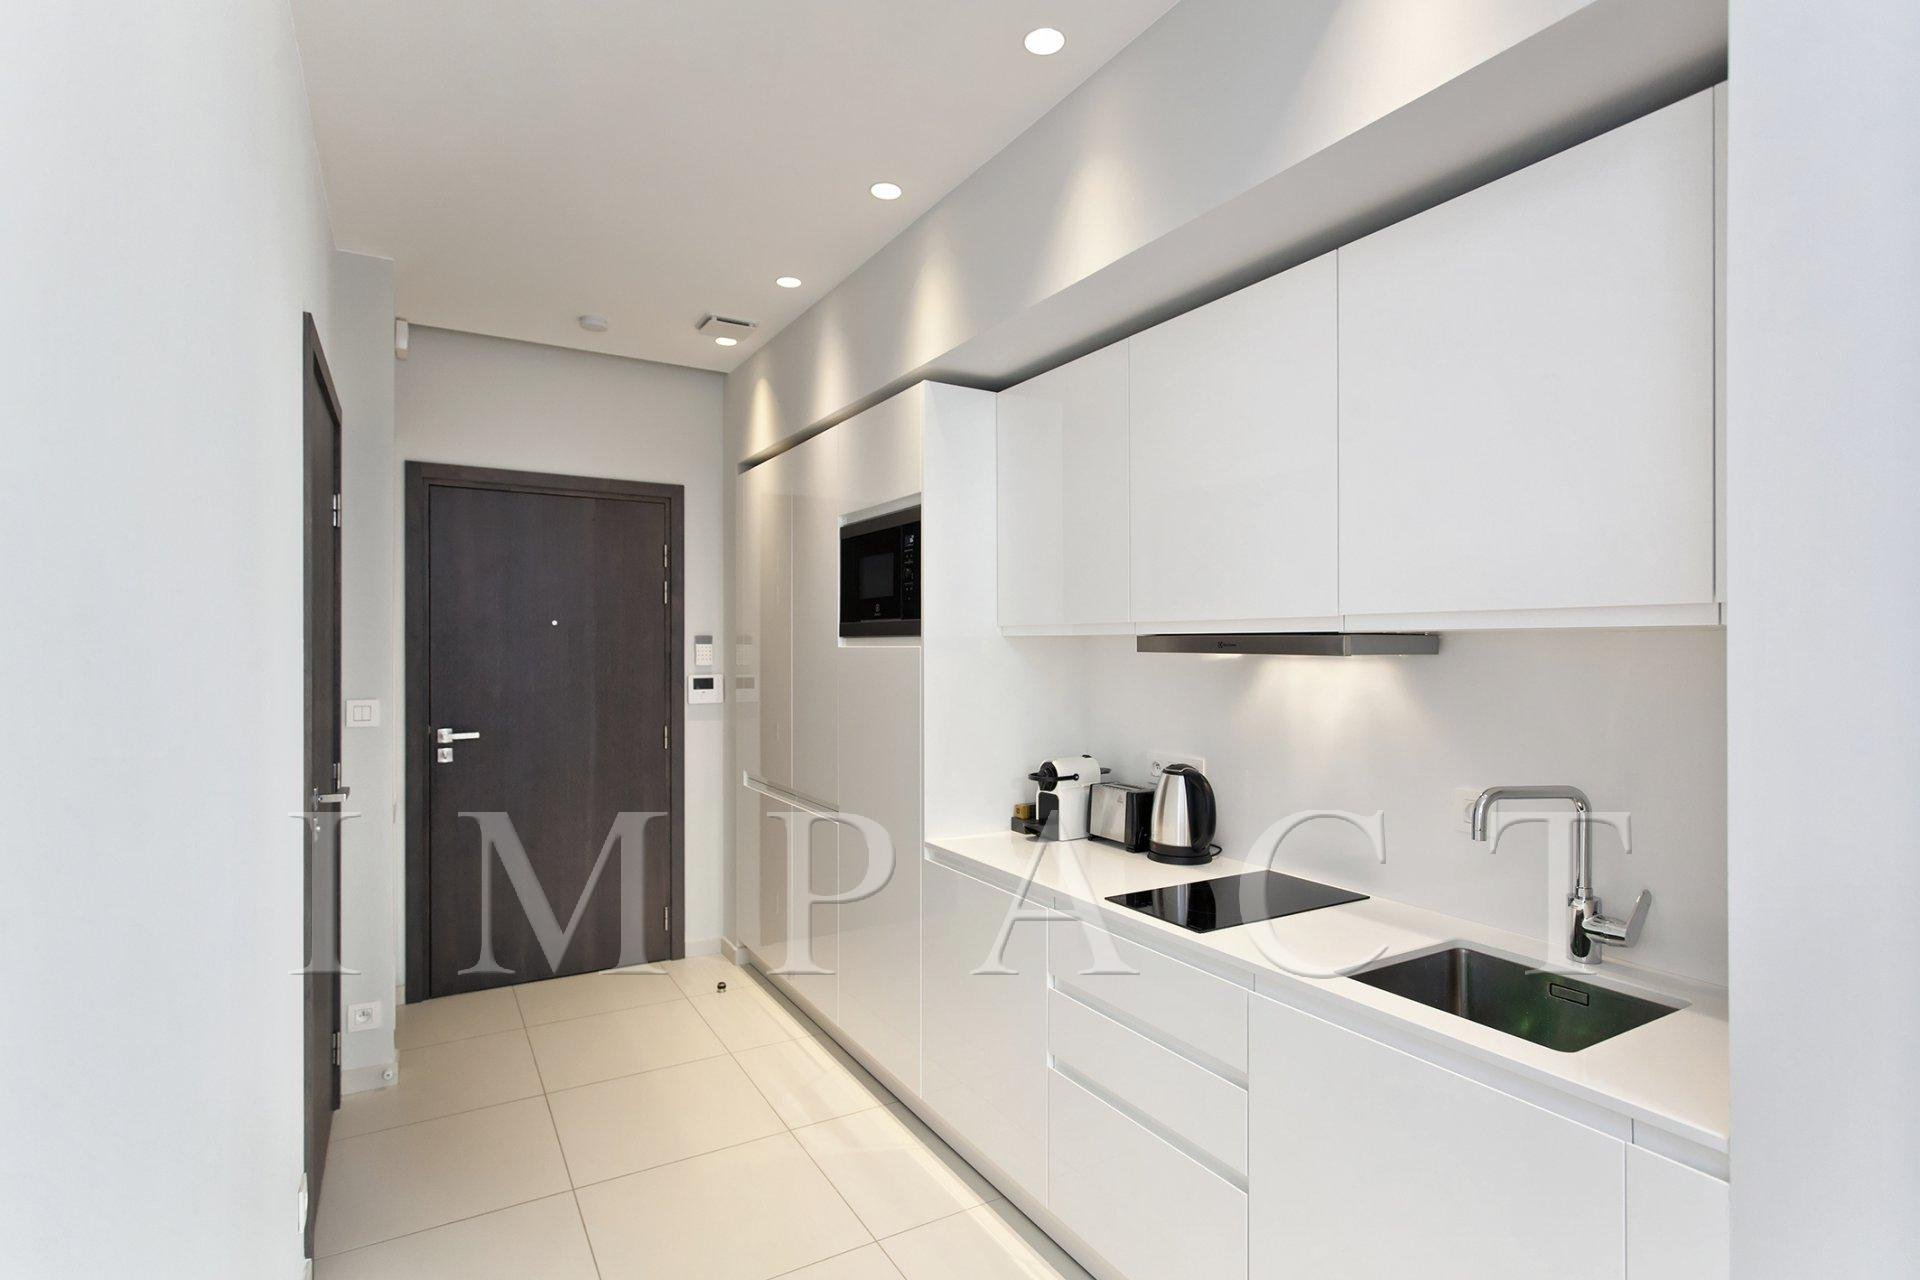 1 bedroom apartment to rent - City center of Cannes